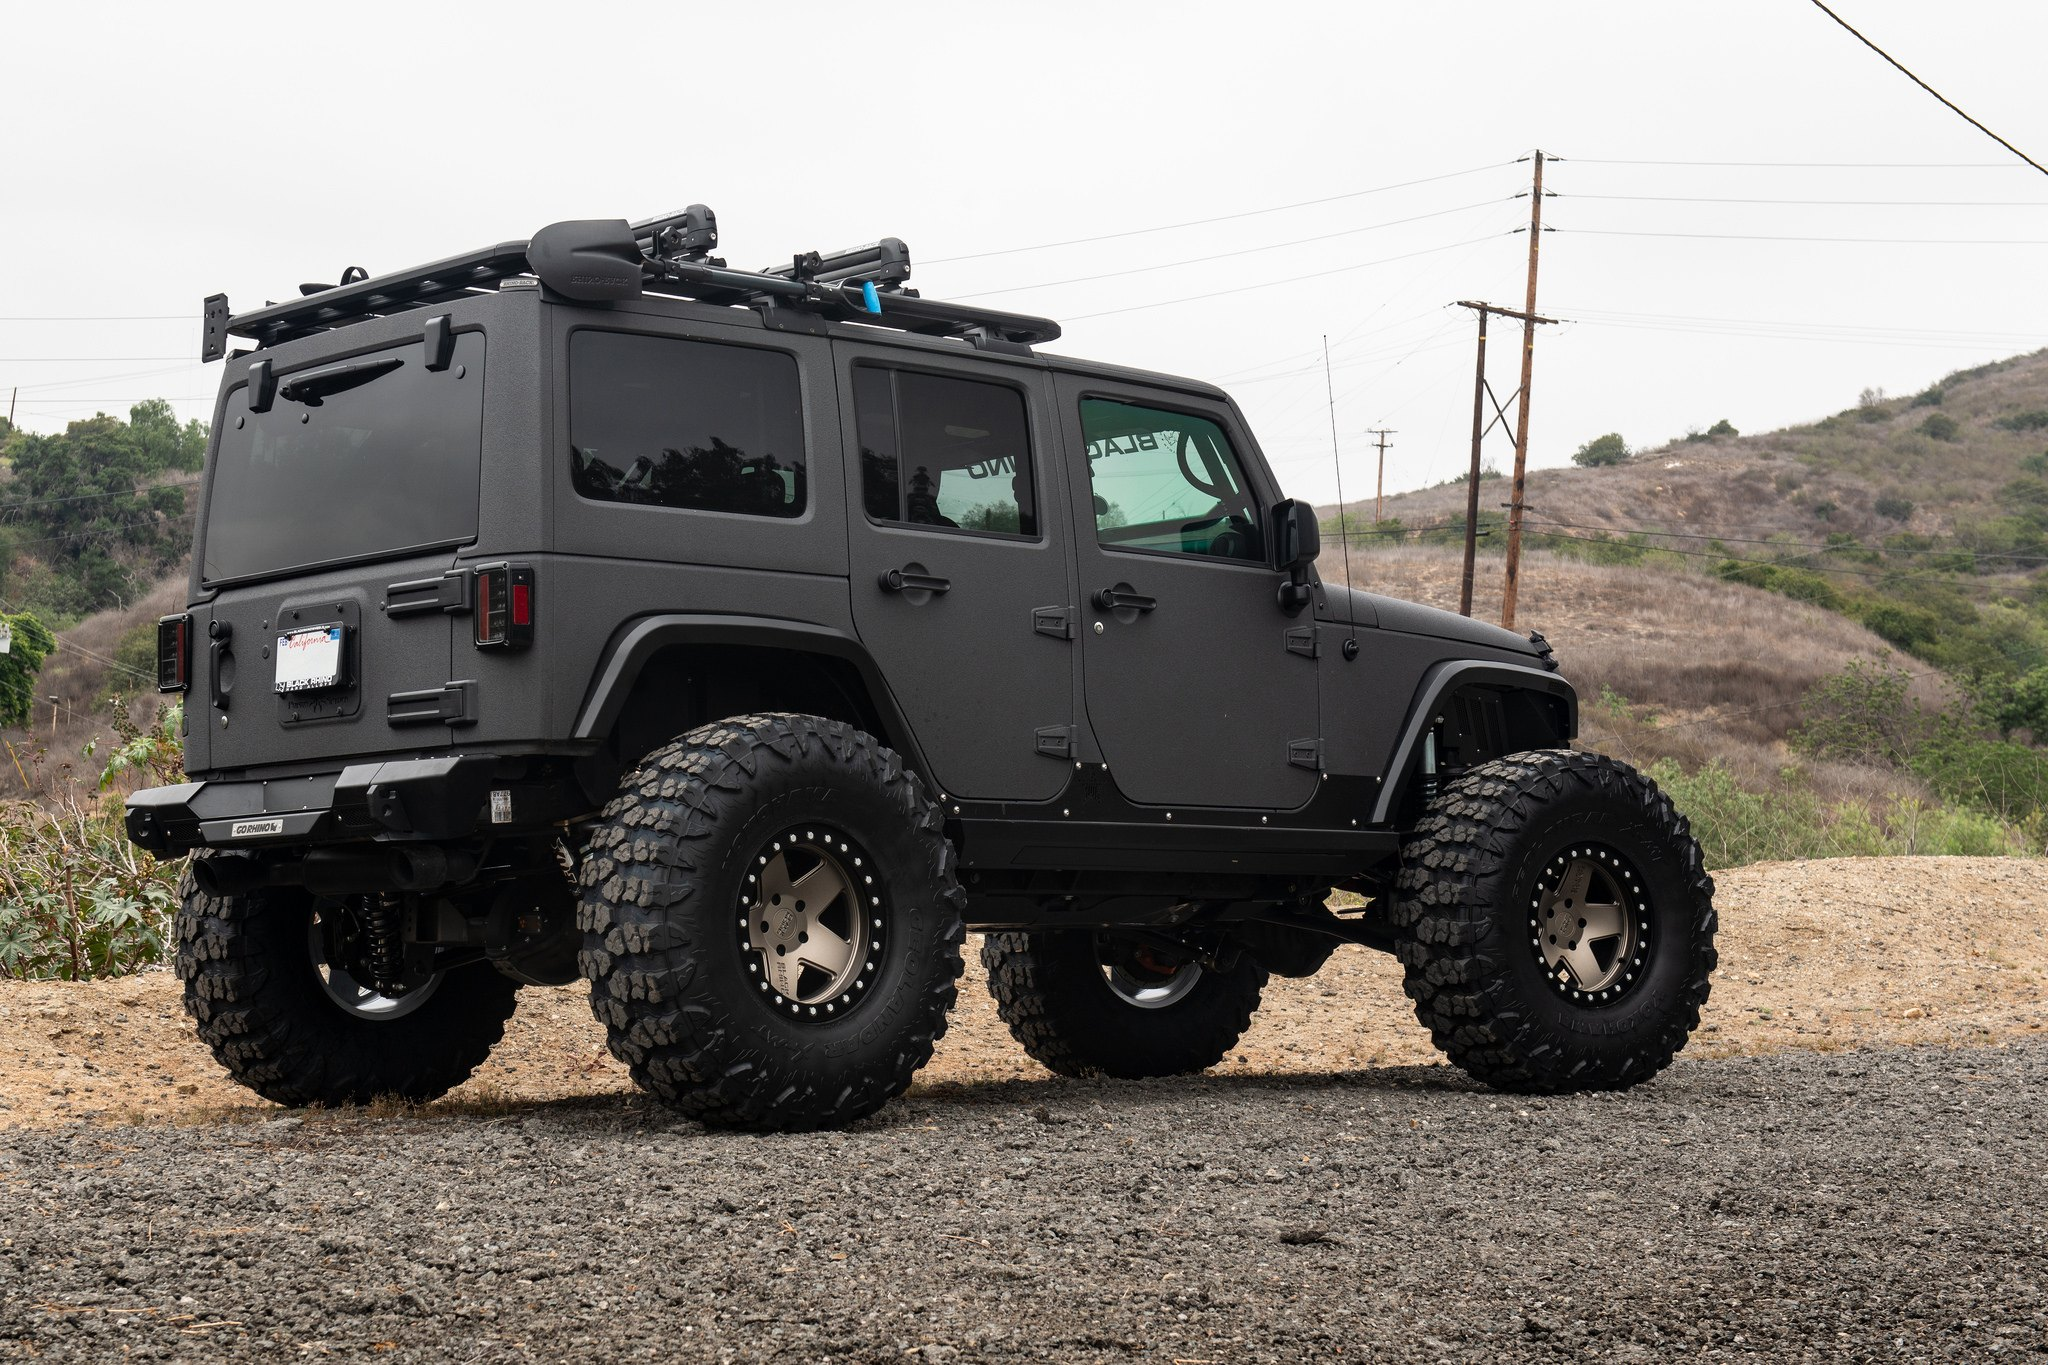 Completely Blacked Out Jeep Wrangler Shod In Off Road Yokohama Tires